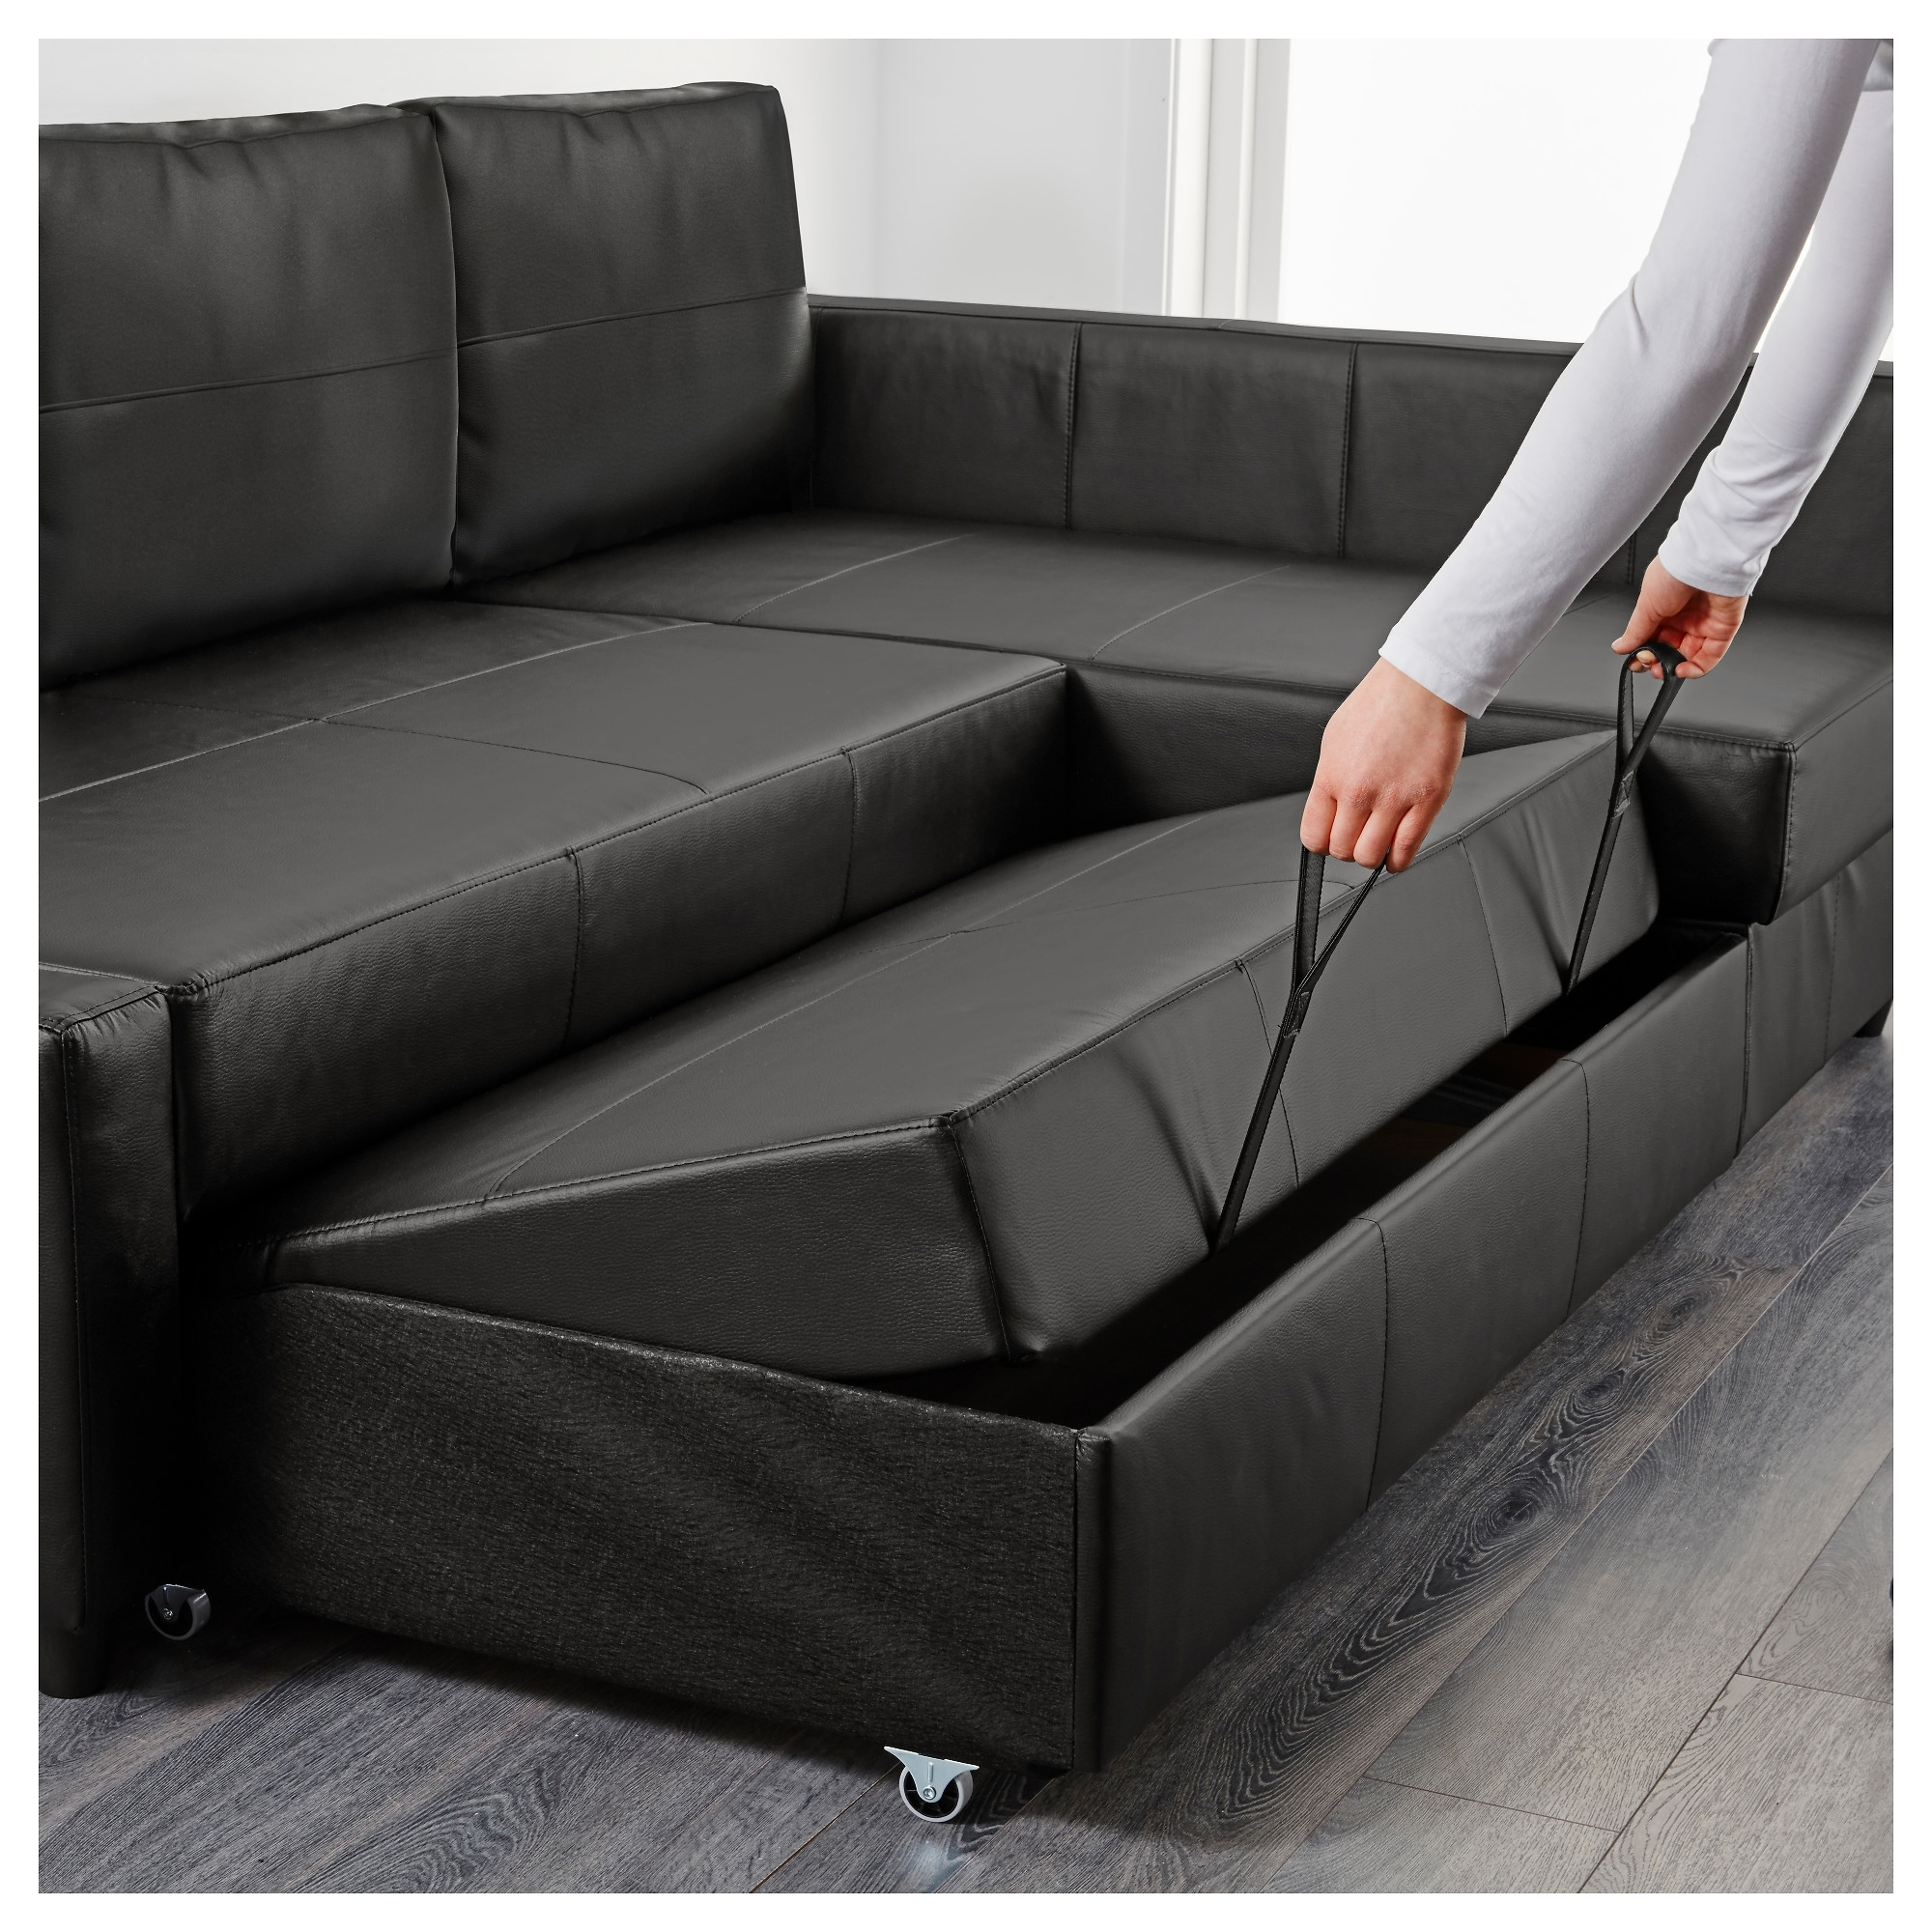 Well Known Friheten Sleeper Sectional,3 Seat W/storage – Skiftebo Dark Gray Within Leather Sofas With Storage (View 2 of 15)